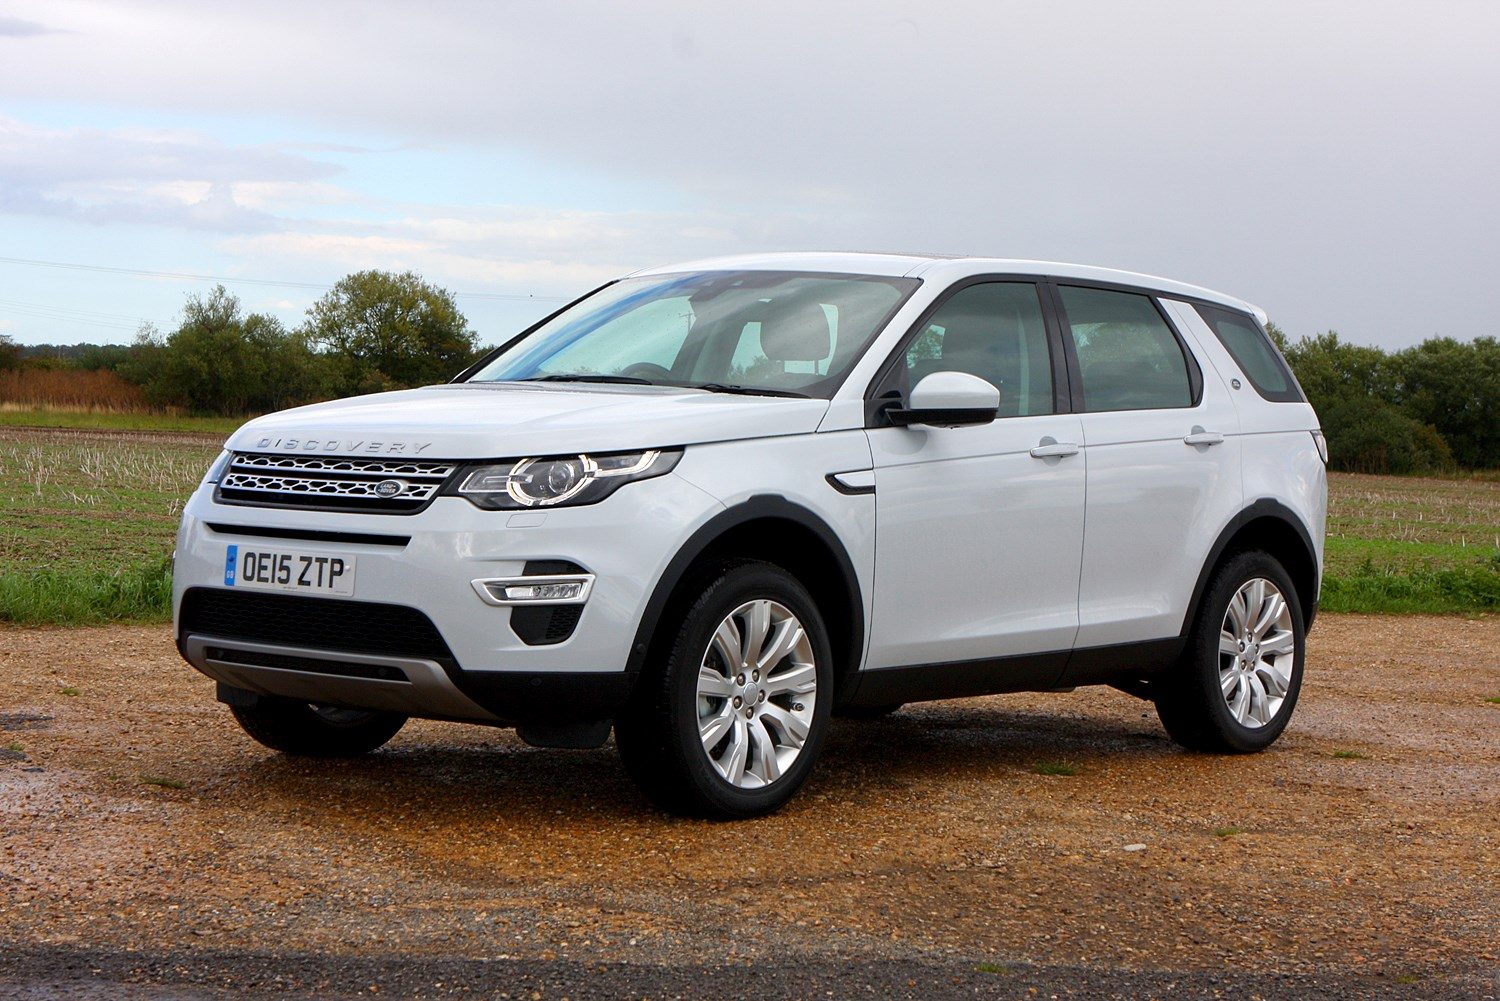 Land Rover Discovery Sport 4x4 Review 2015 Parkers